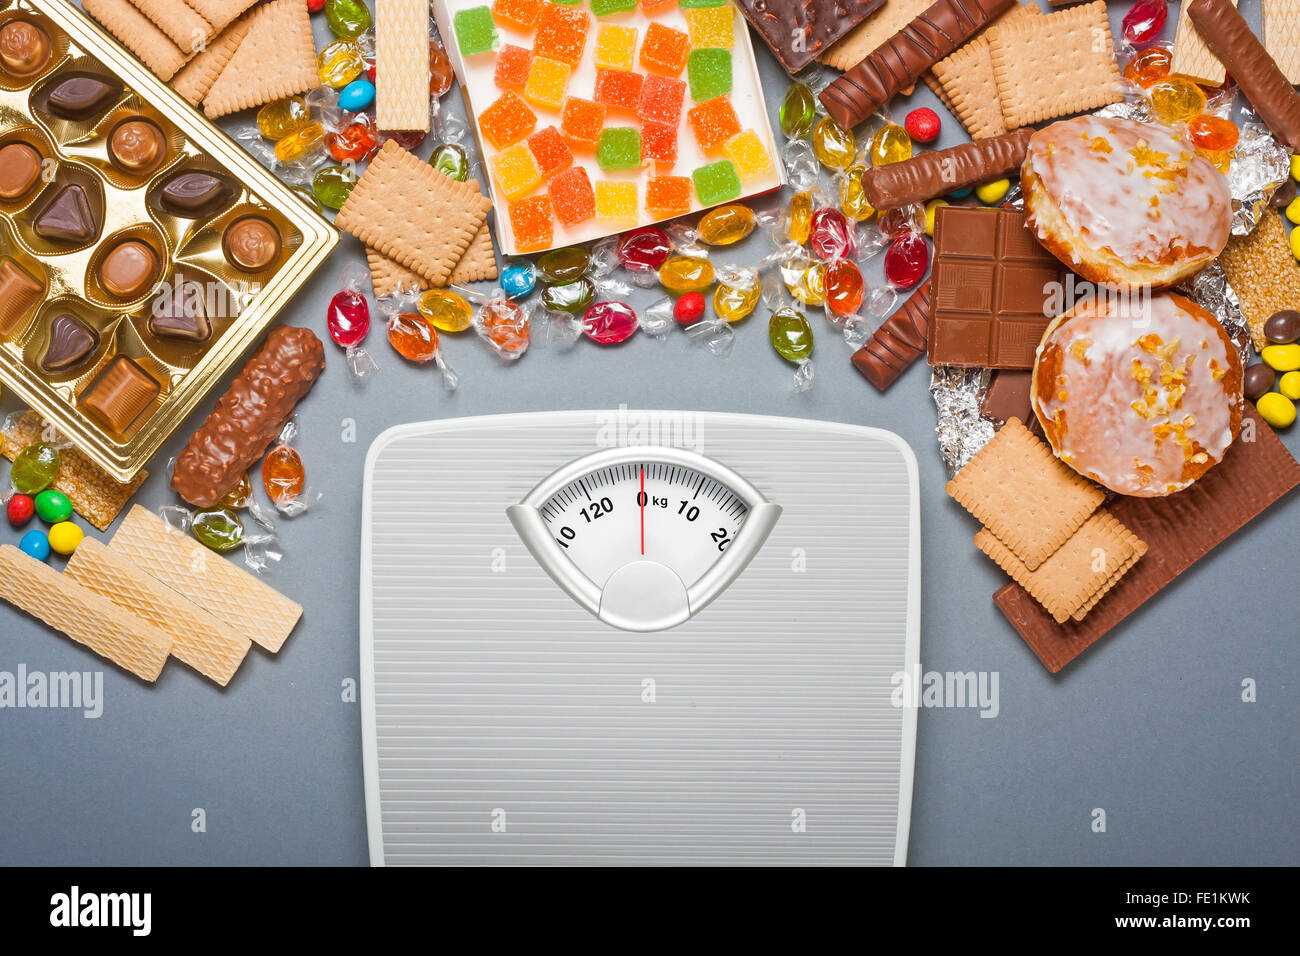 Unhealthy diet concept - overweight. Bathroom scale and chocolate, jelly cubes, candies, chocolate bars, cookies, - Stock Image